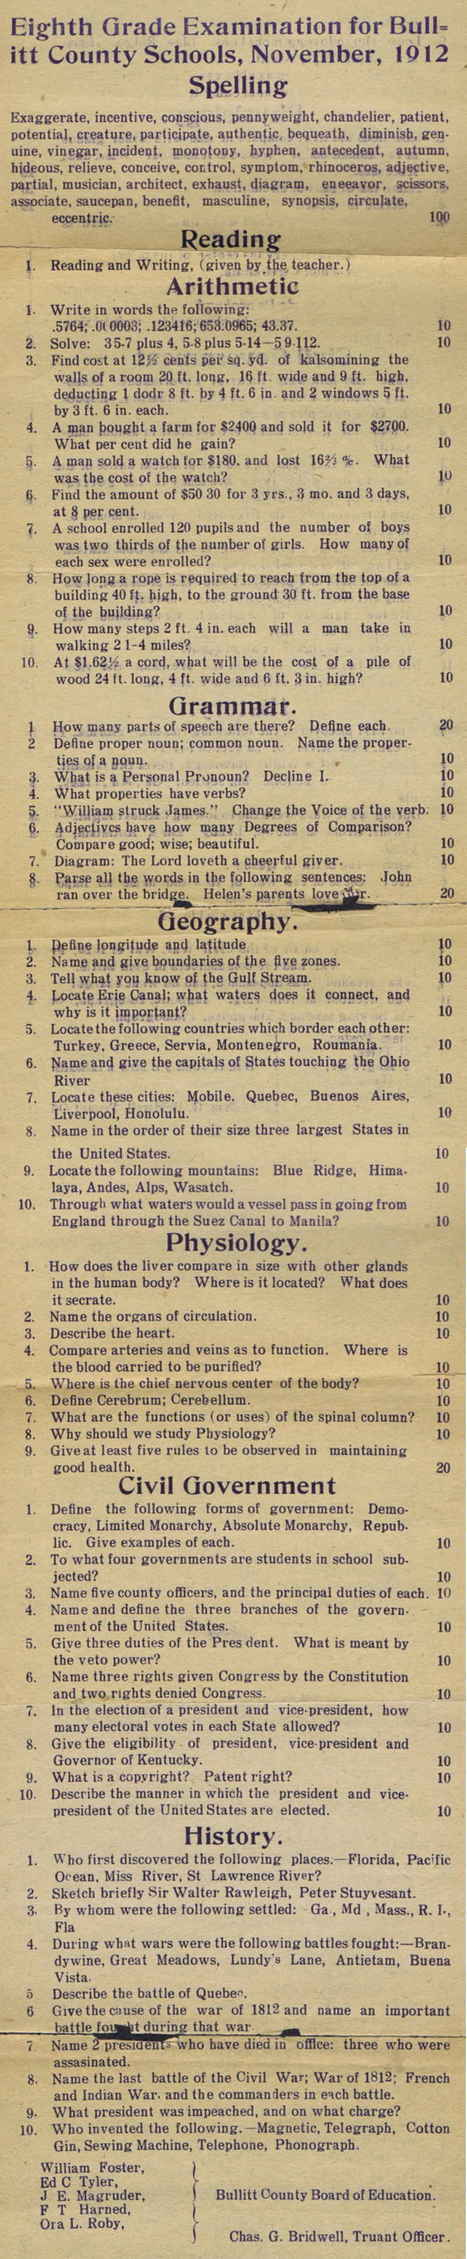 1912 exam in USA | Digital Chinese | Scoop.it